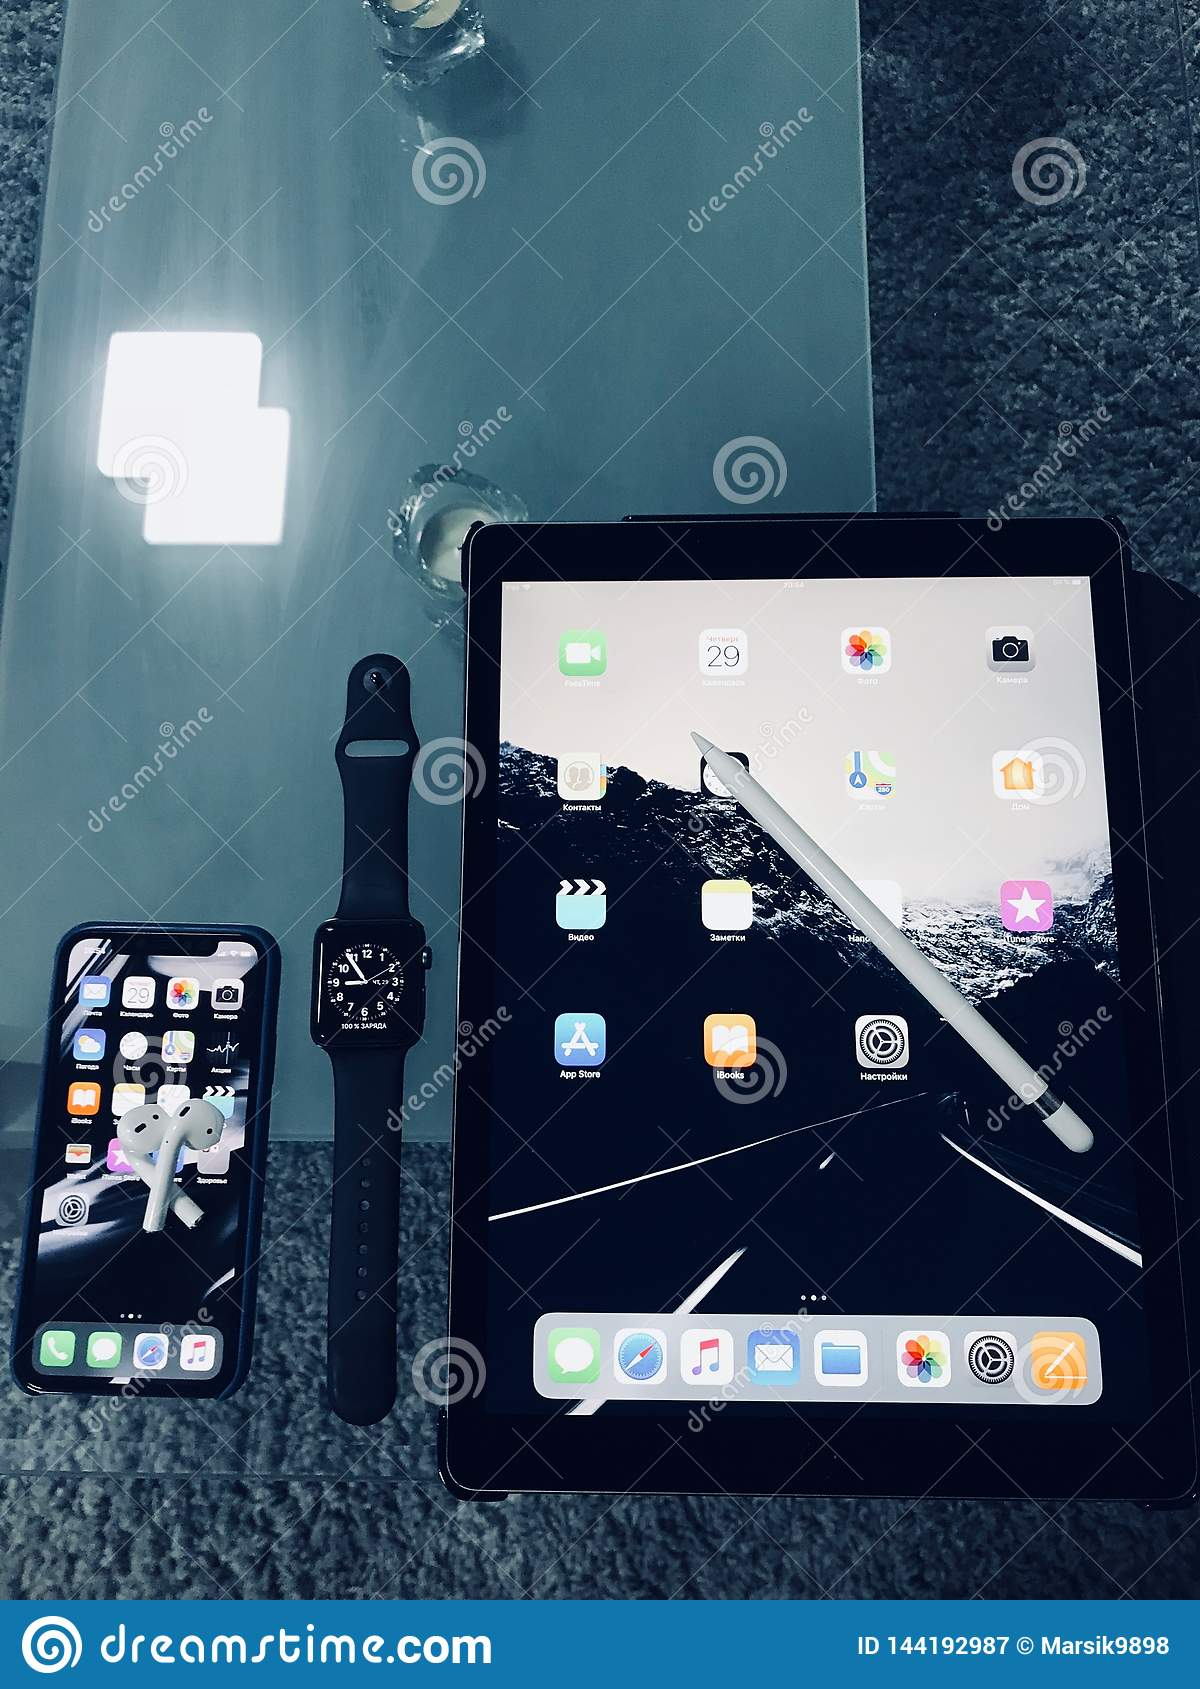 Apple iPhone ,iPad ,apple pencil